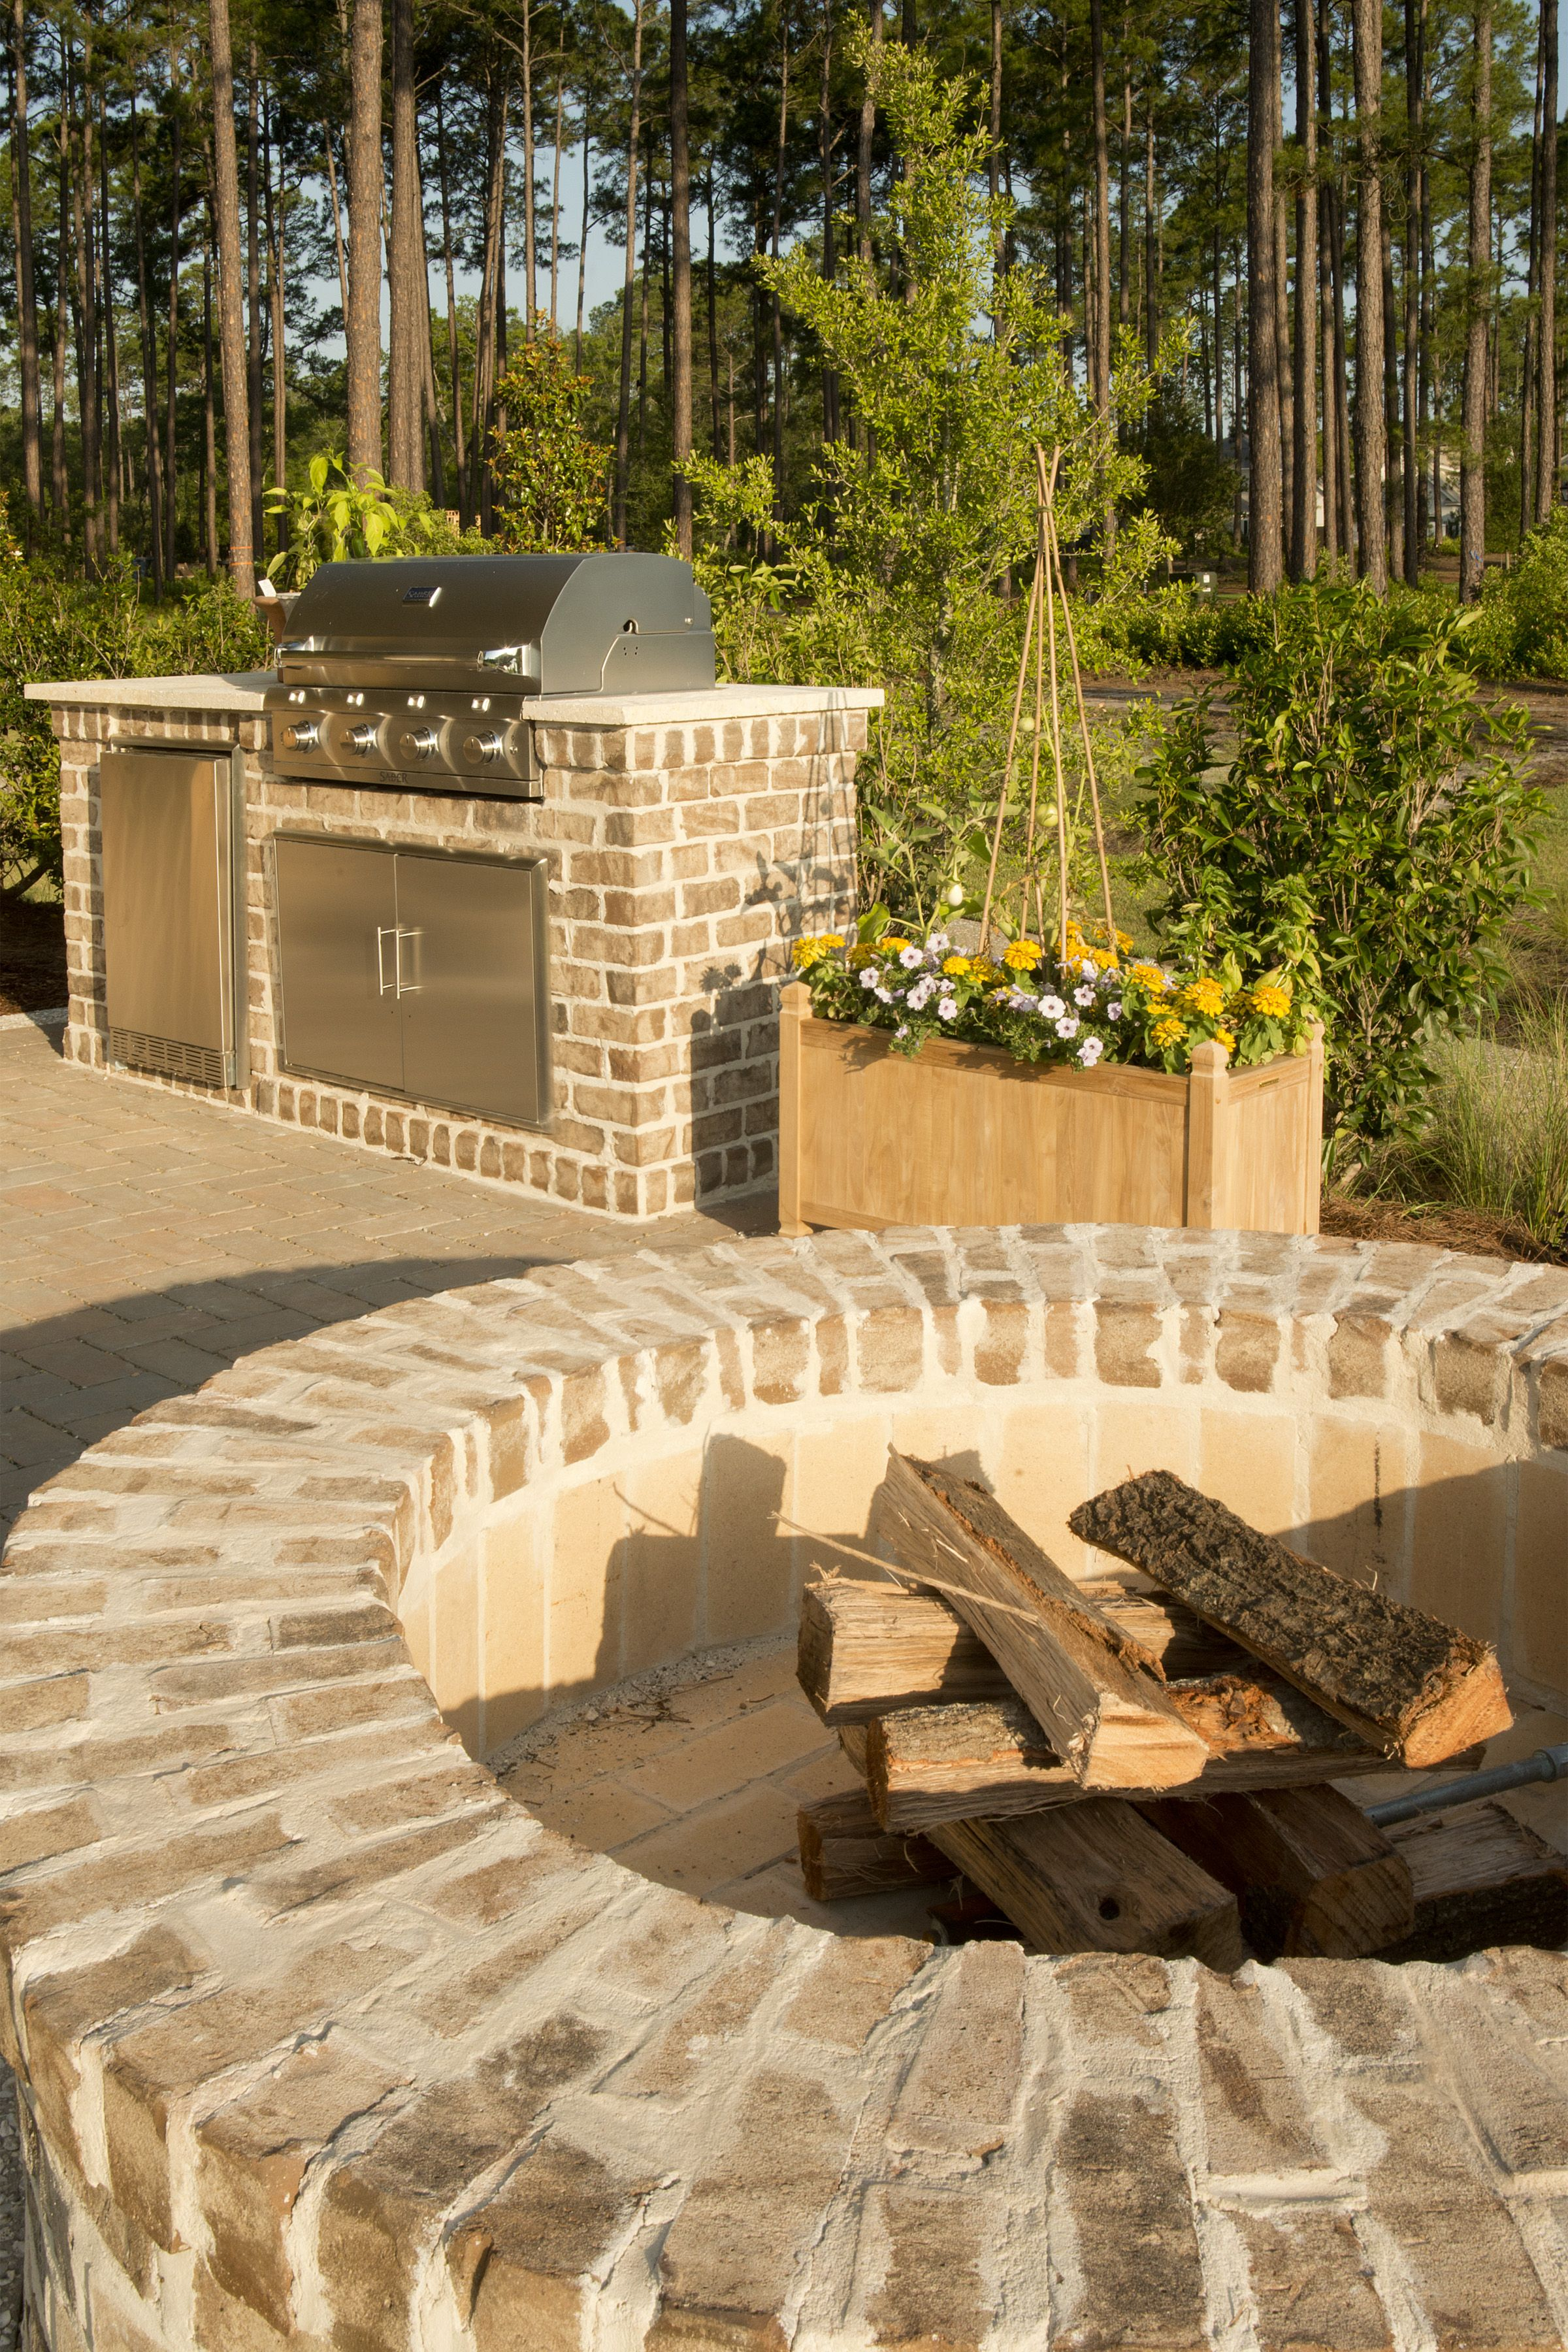 Fire pit and outdoor kitchen luxury real estate south for Fire pit ideas outdoor living